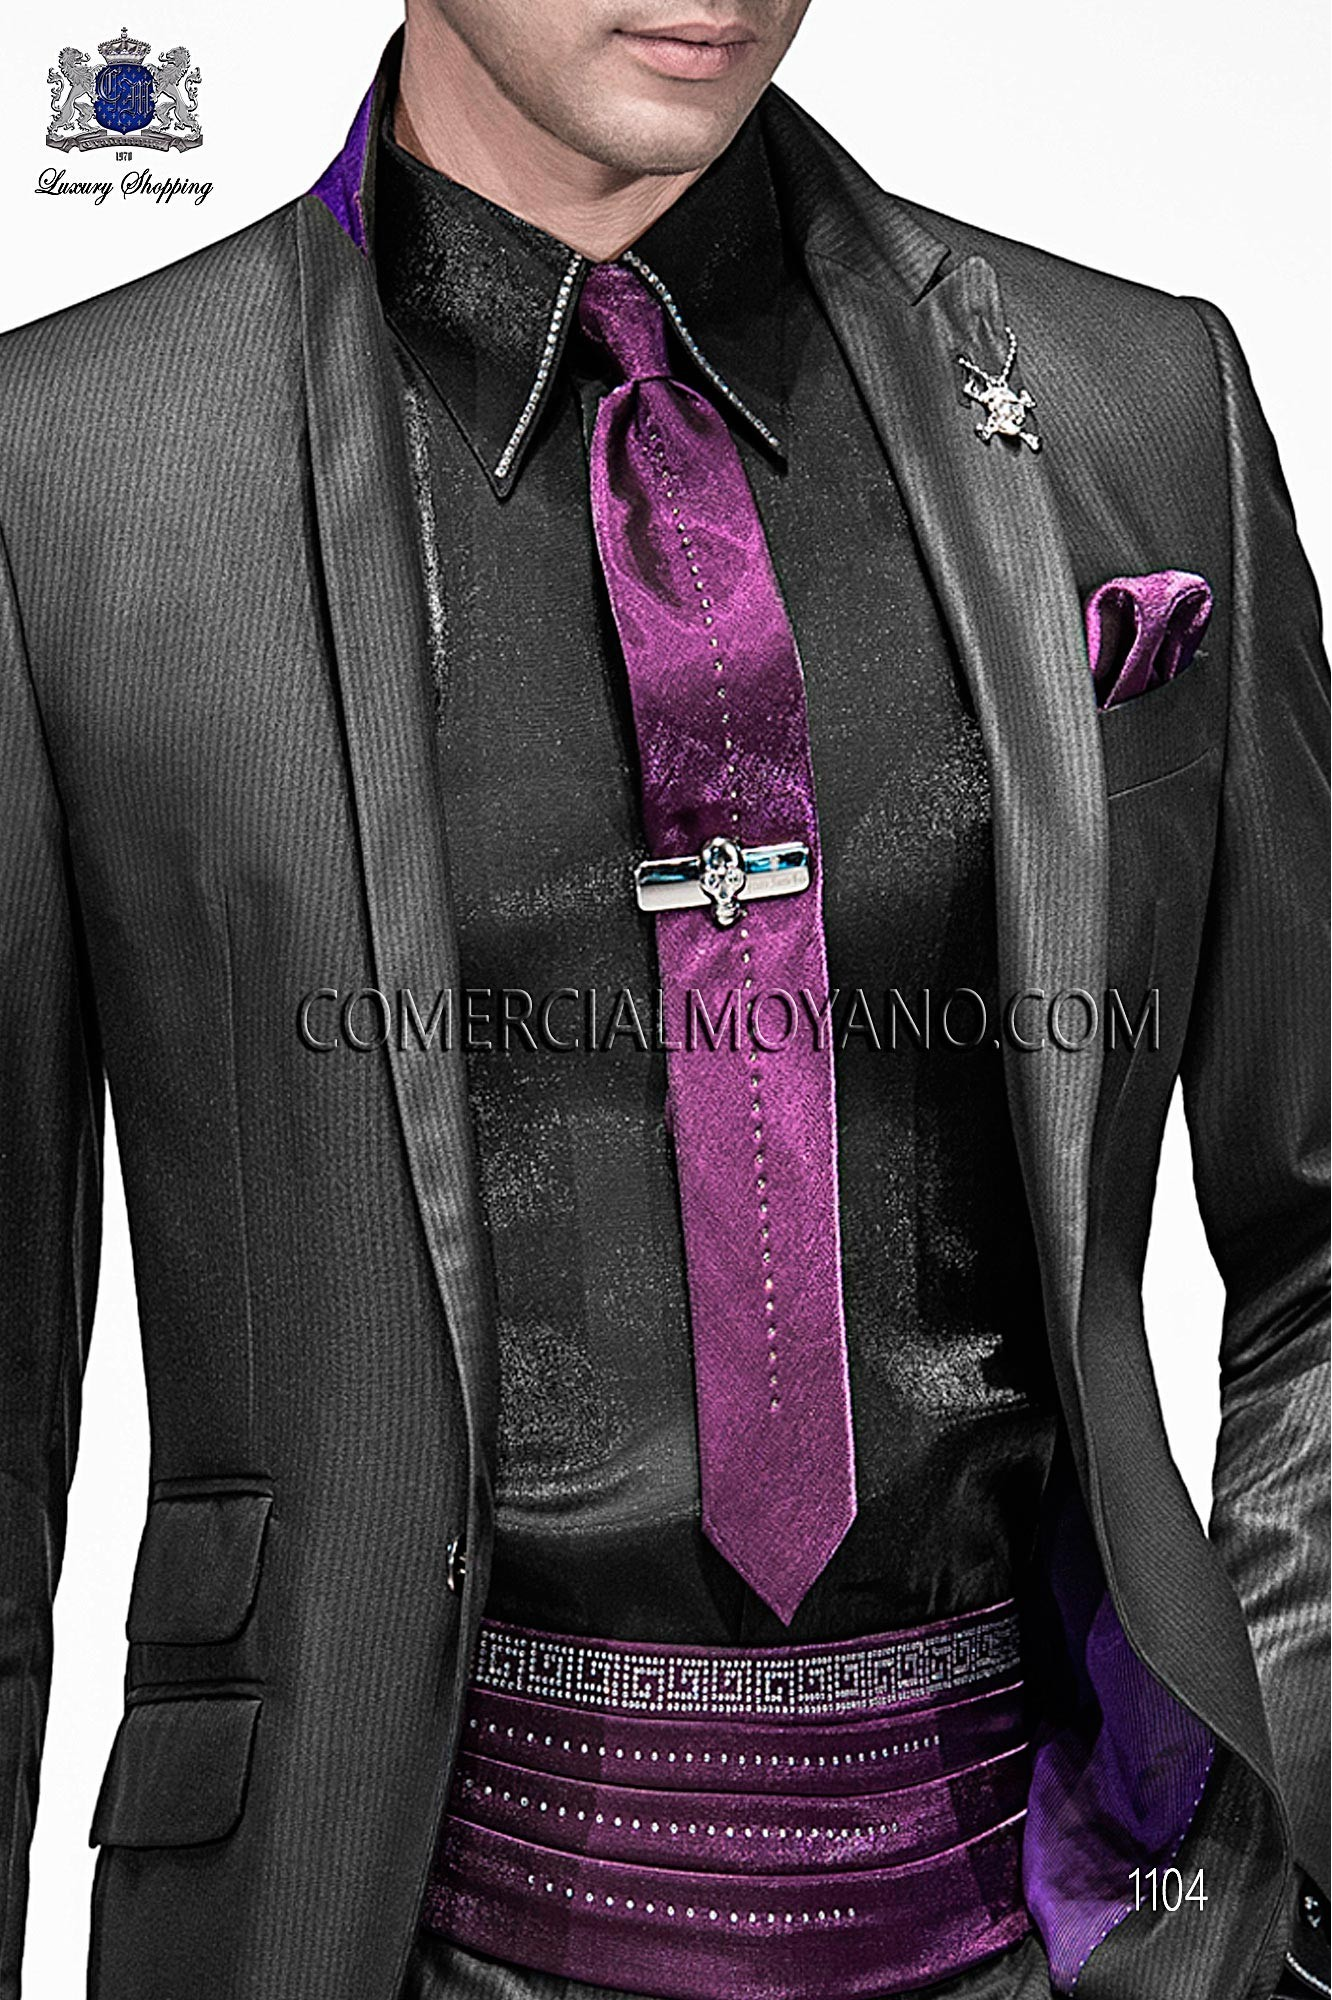 Italian emotion black/ gray men wedding suit, model: 1104 Ottavio Nuccio Gala 2017 Emotion Collection